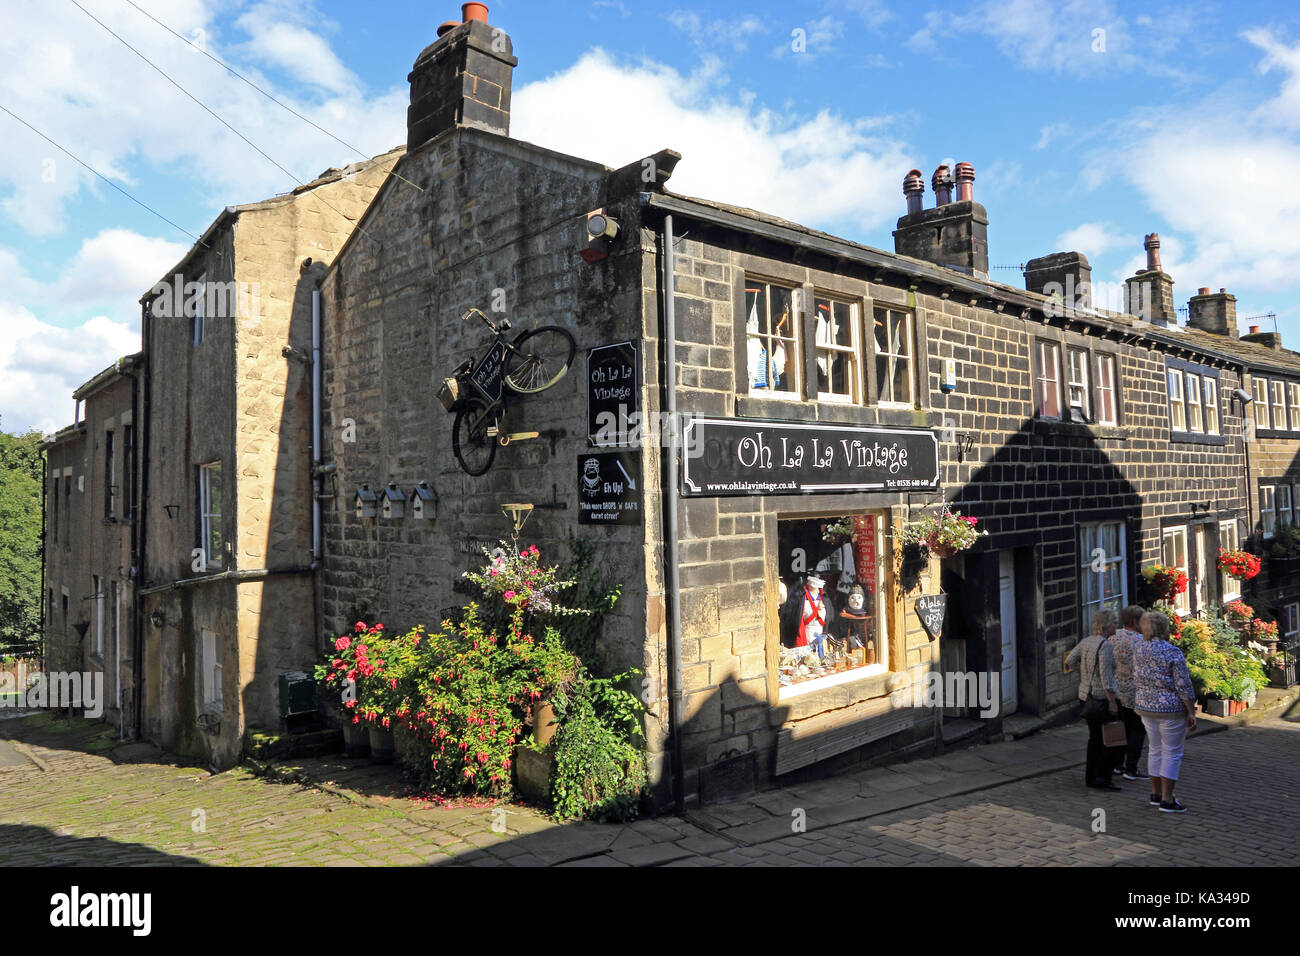 Oh La La Vintage shop, Haworth, West Yorkshire - Stock Image